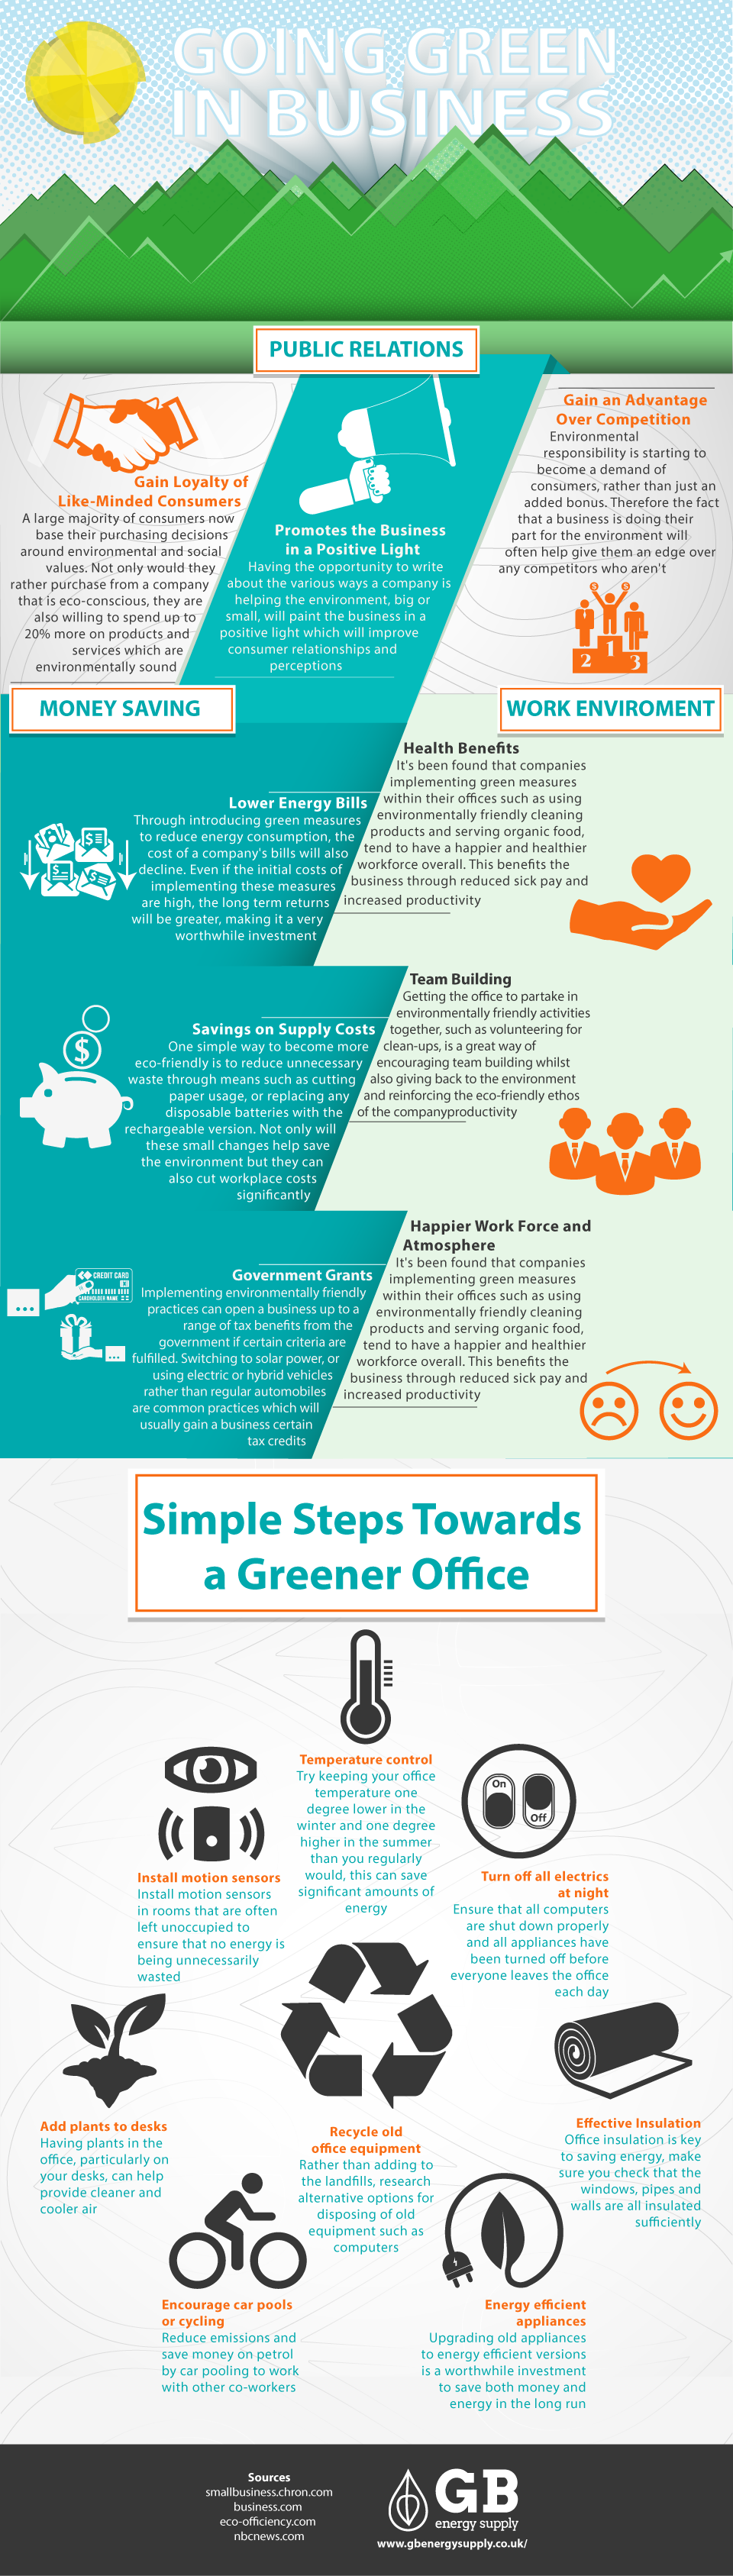 Going Green in Business